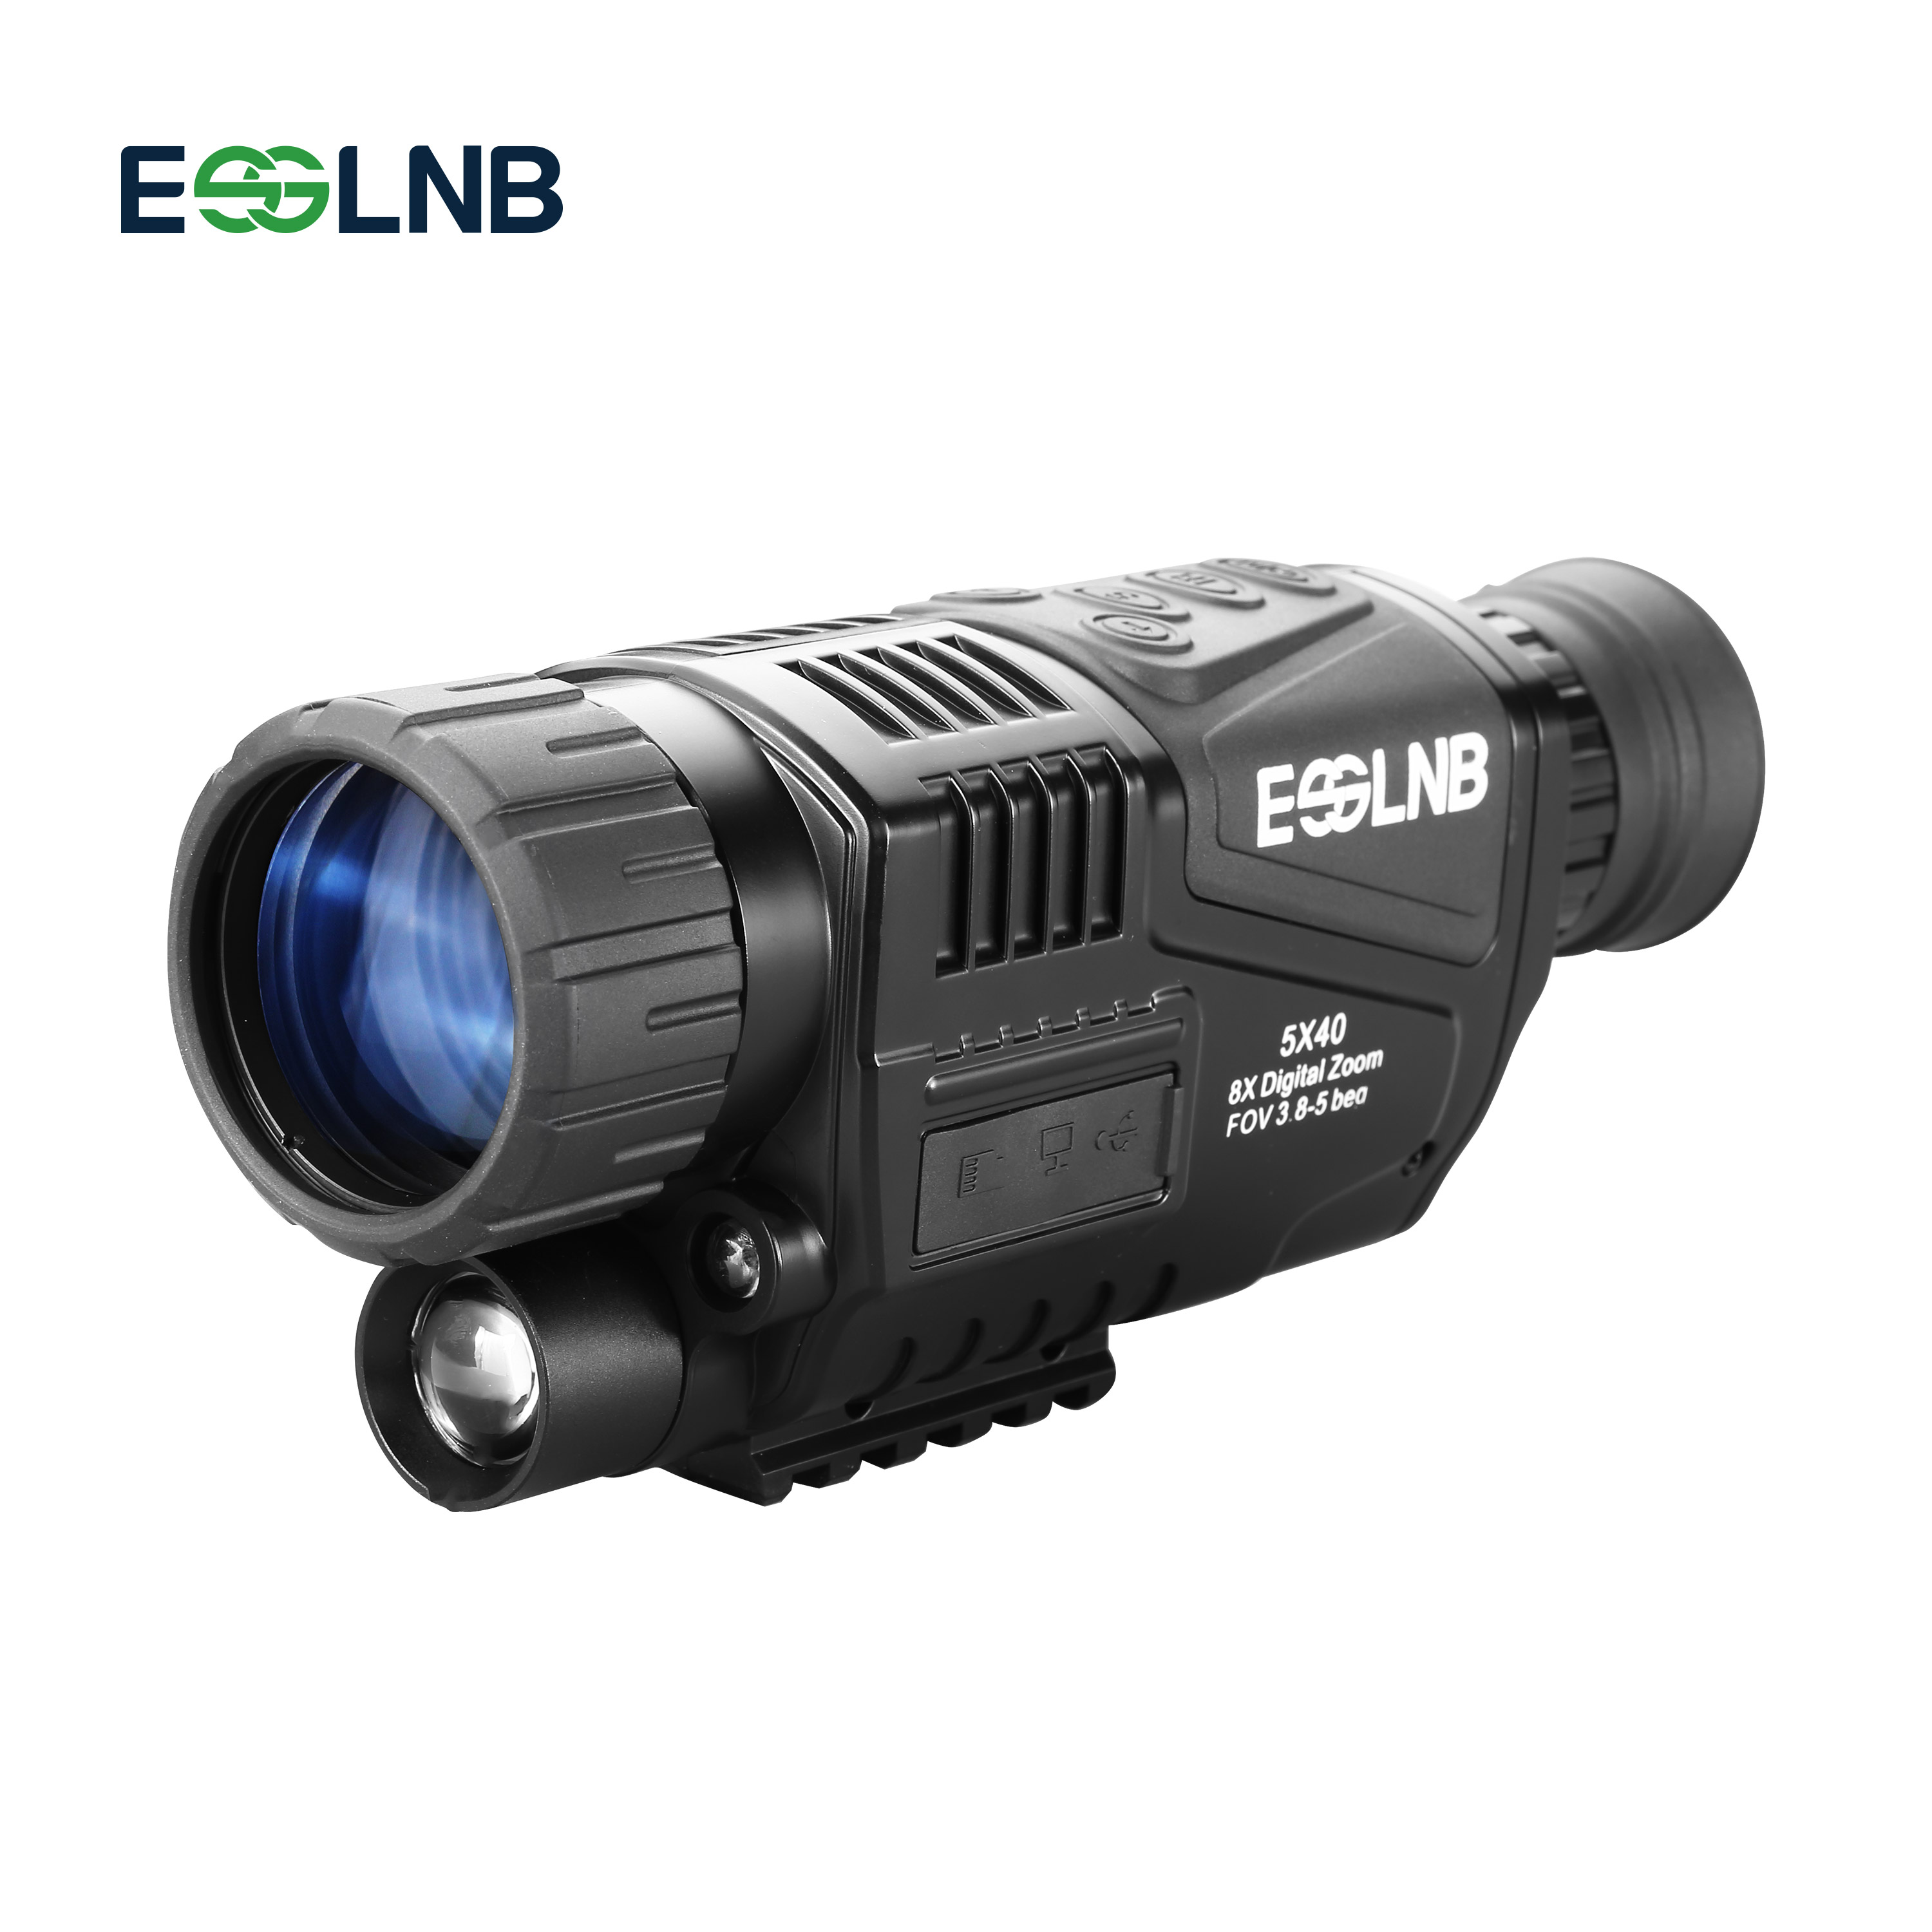 Infrared Digital Night Vision 5X40 Monocular Night Vision for Hunting Military with Rechargeable Battery 200M Range Telescope